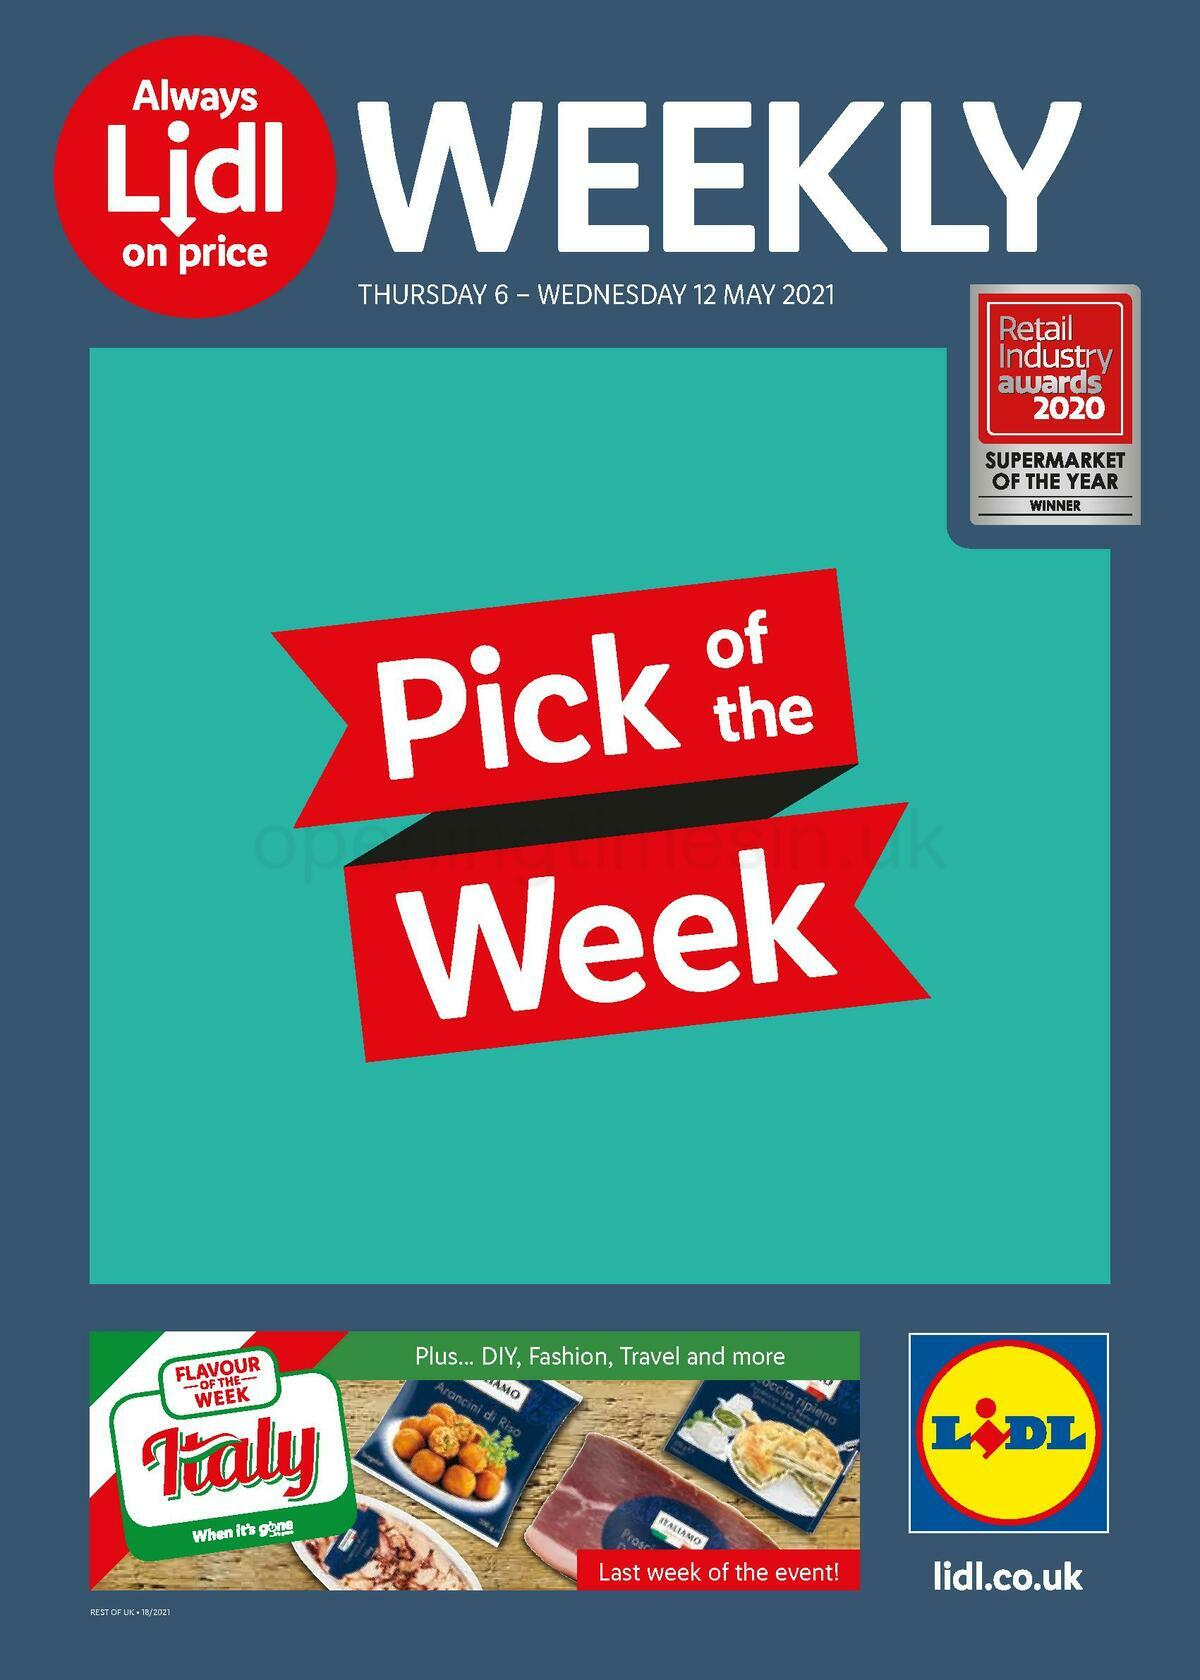 LIDL Offers from May 6